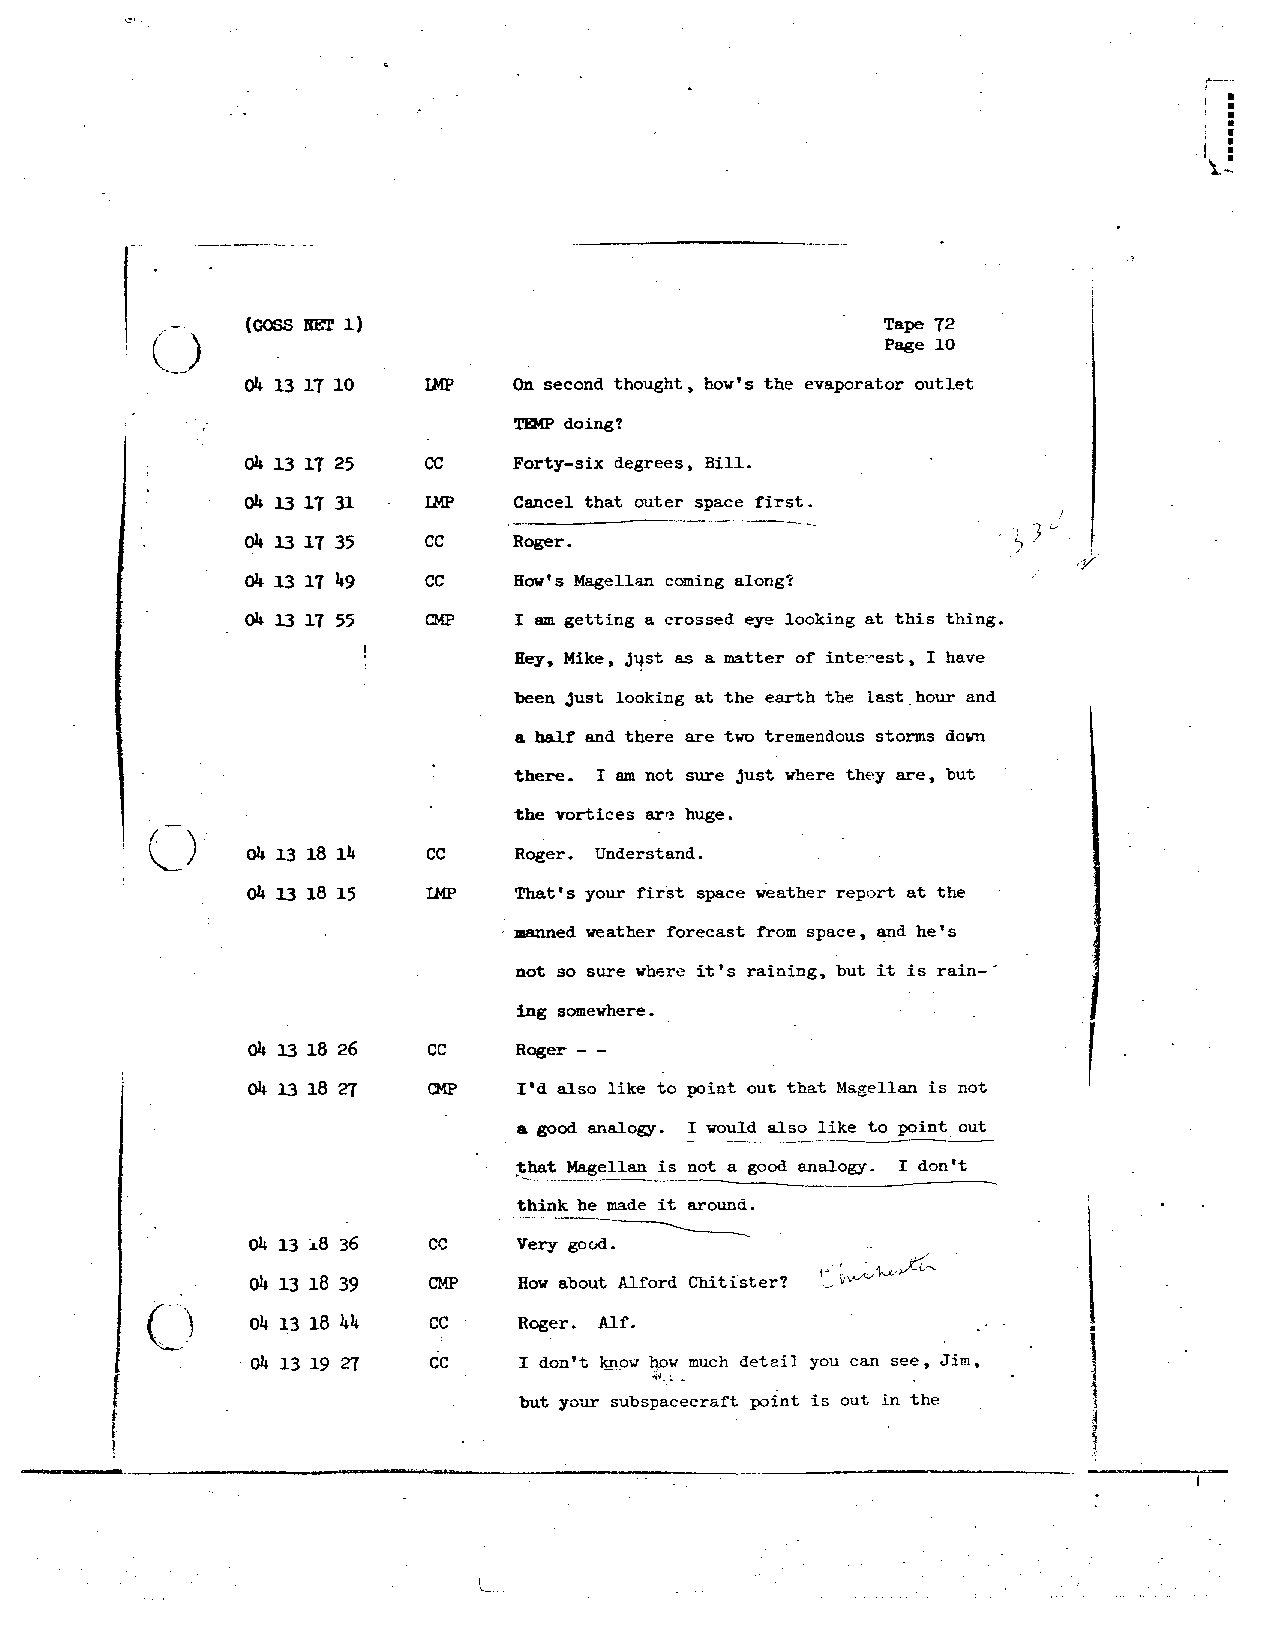 Page 583 of Apollo 8's original transcript